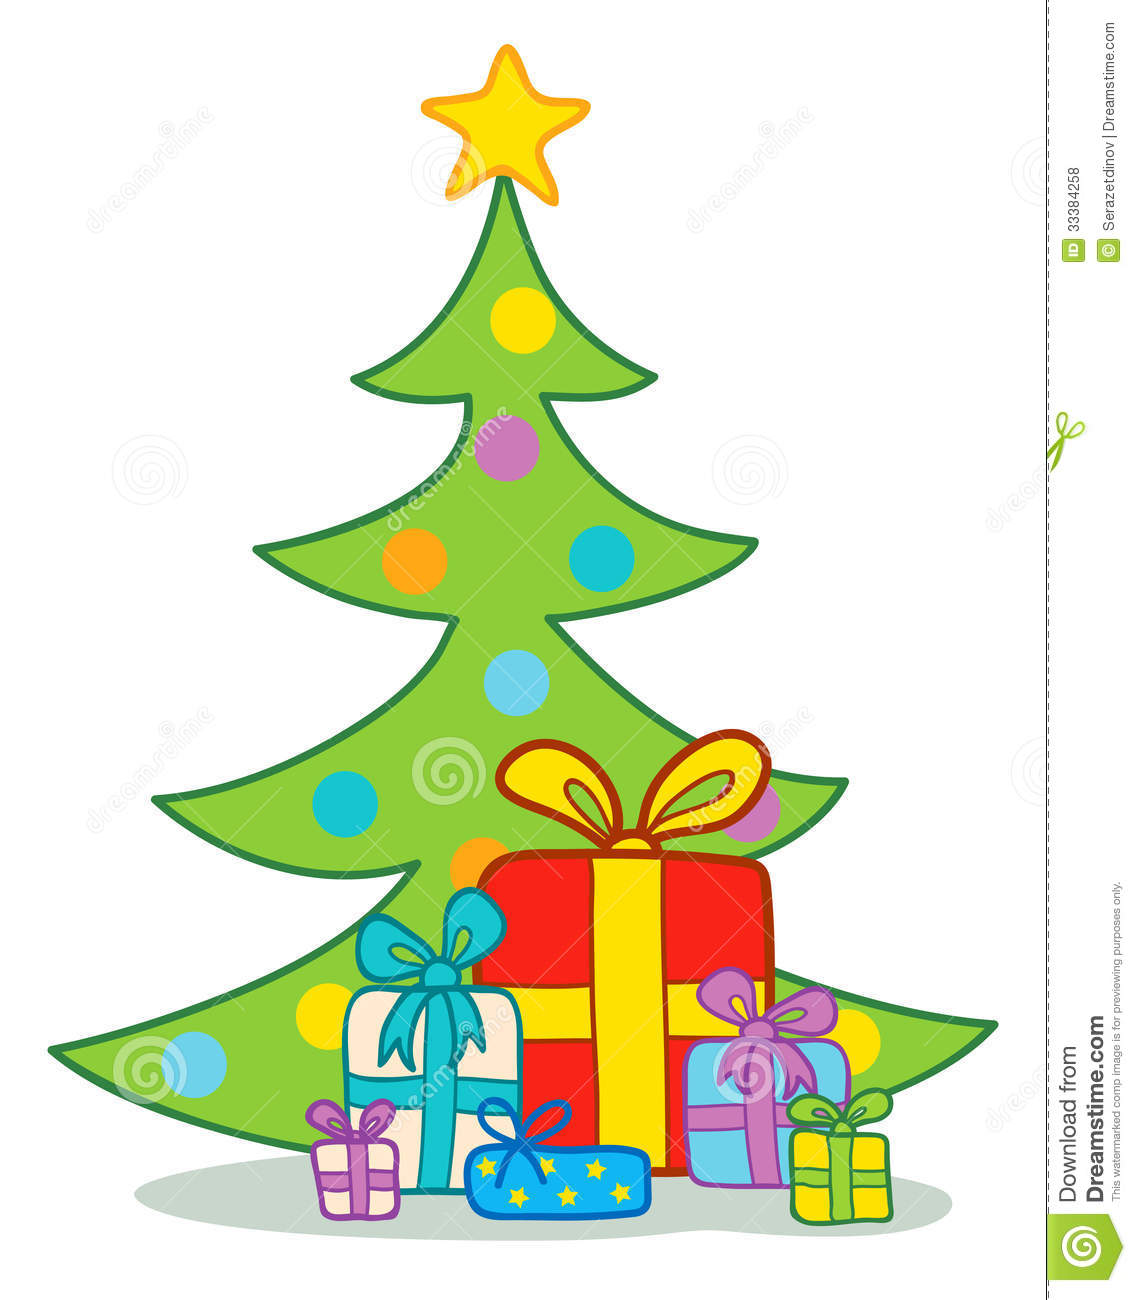 Presents Under The Christmas Tree: Presents Under The Christmas Tree Royalty Free Stock